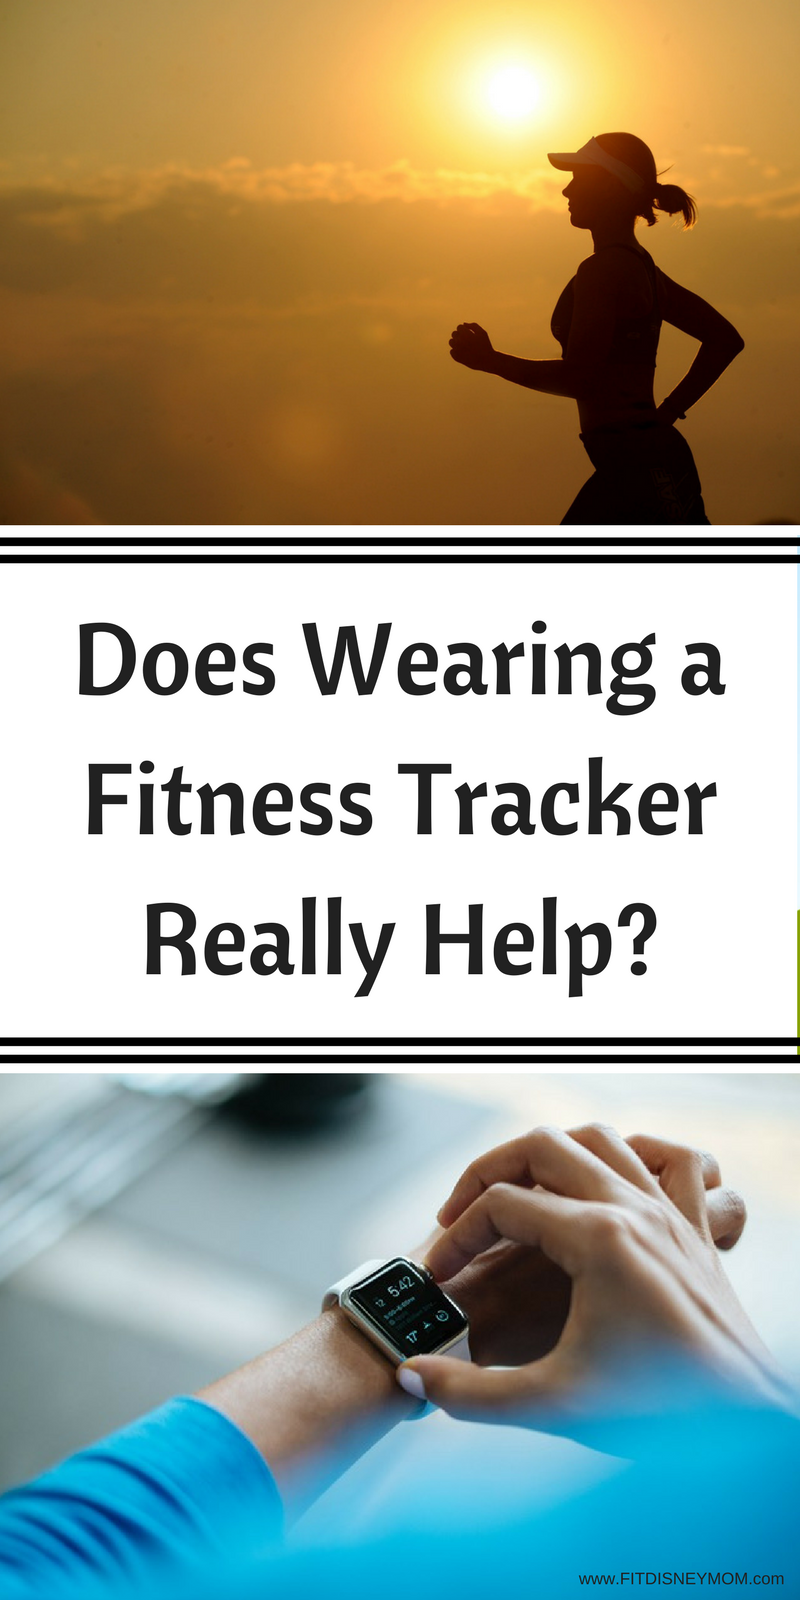 Fitness Tracker, Do Fitness Trackers Work, Apple Watch Review, Losing Weight With a Fitness Tracker